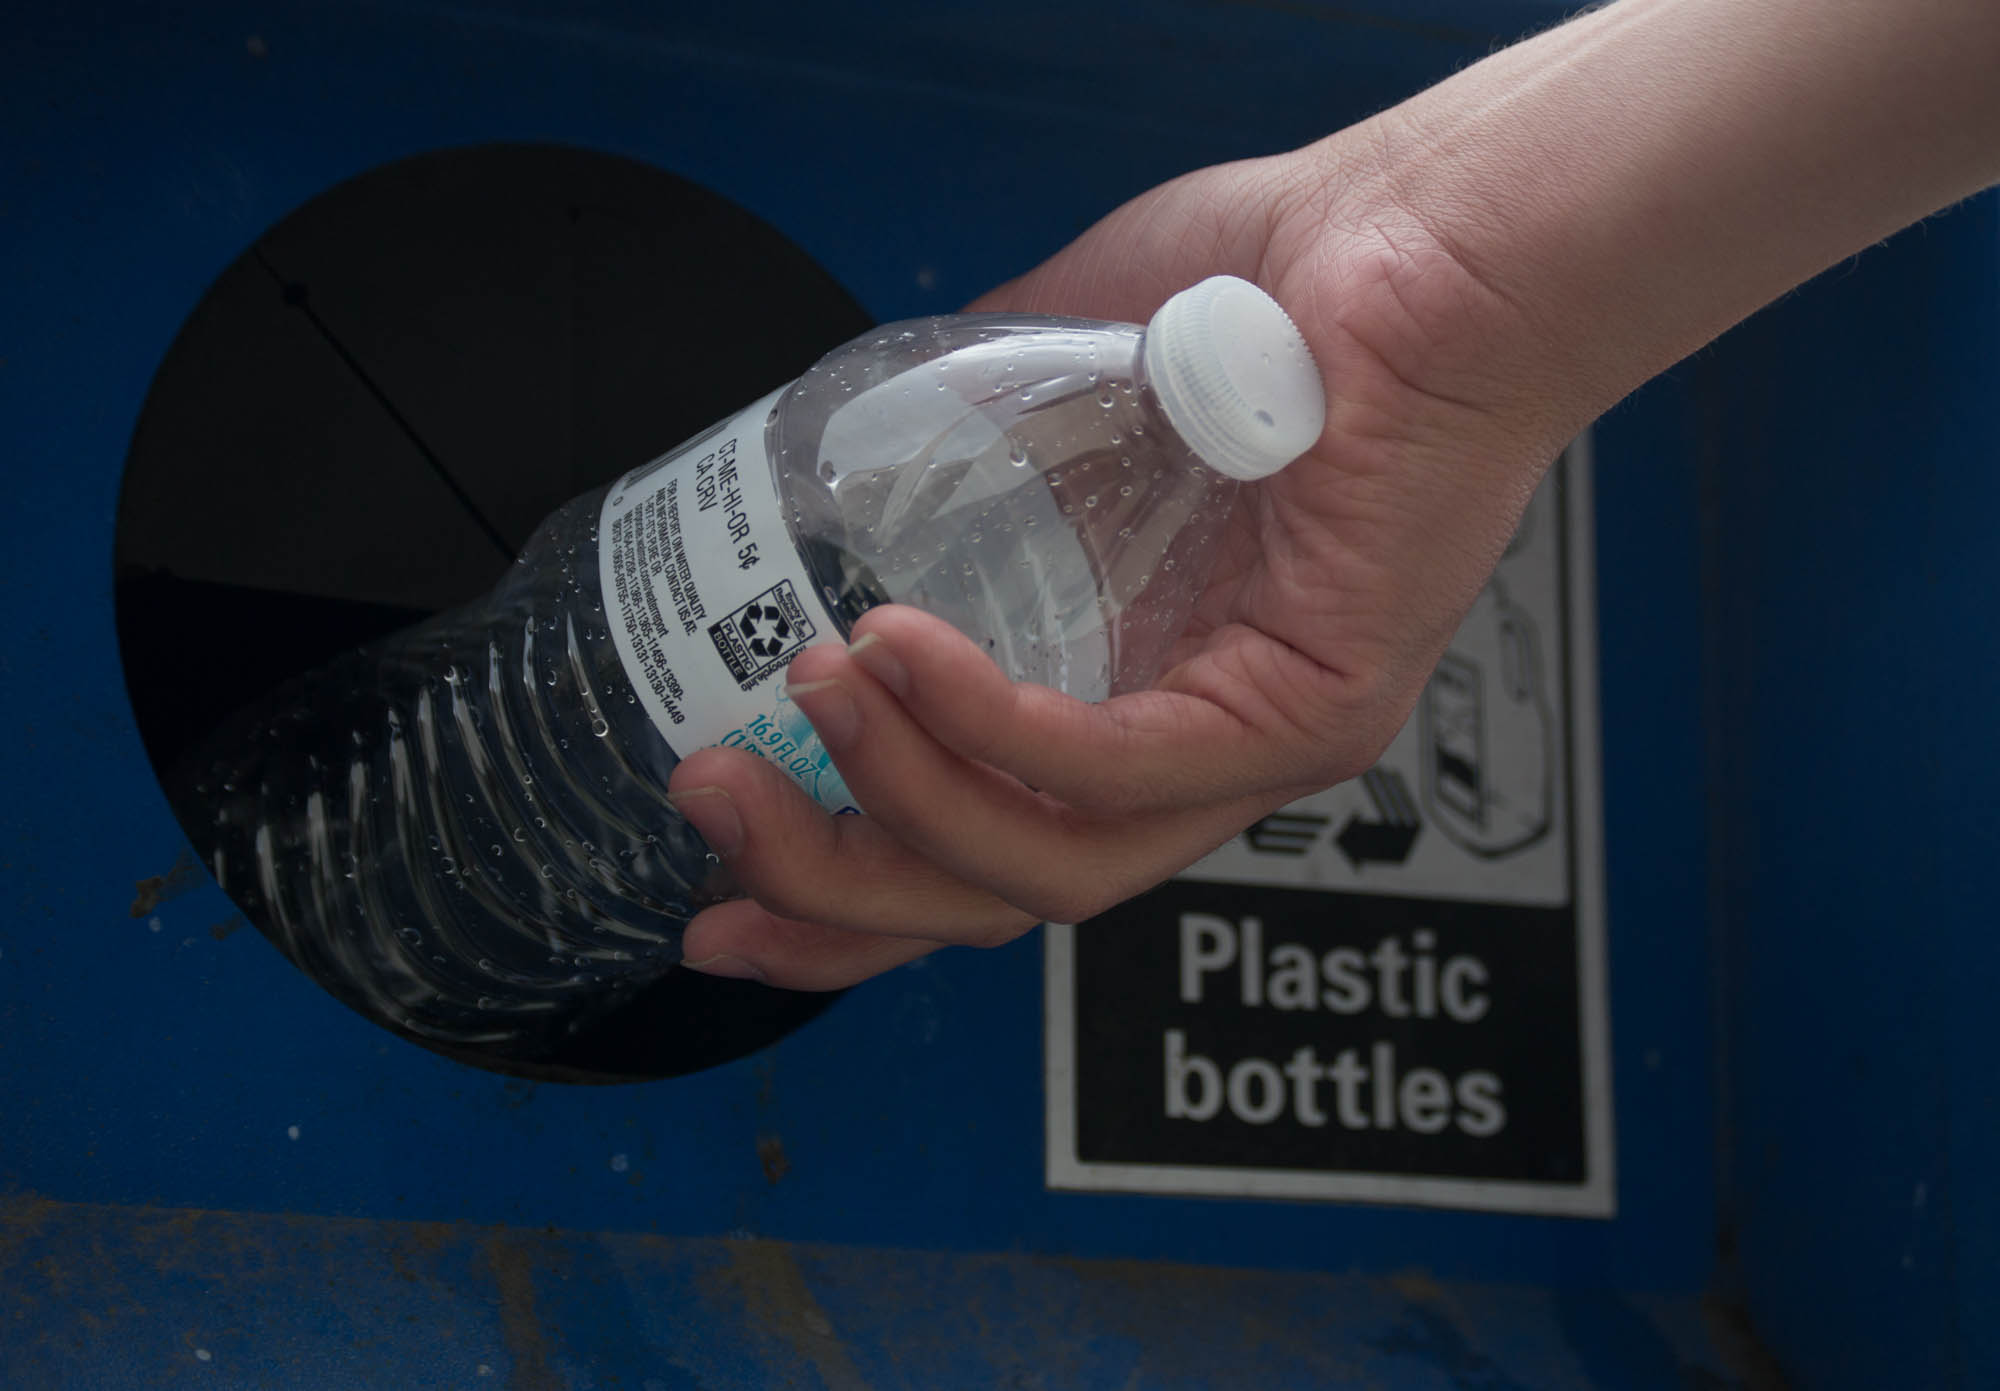 Upcycle recycling plans